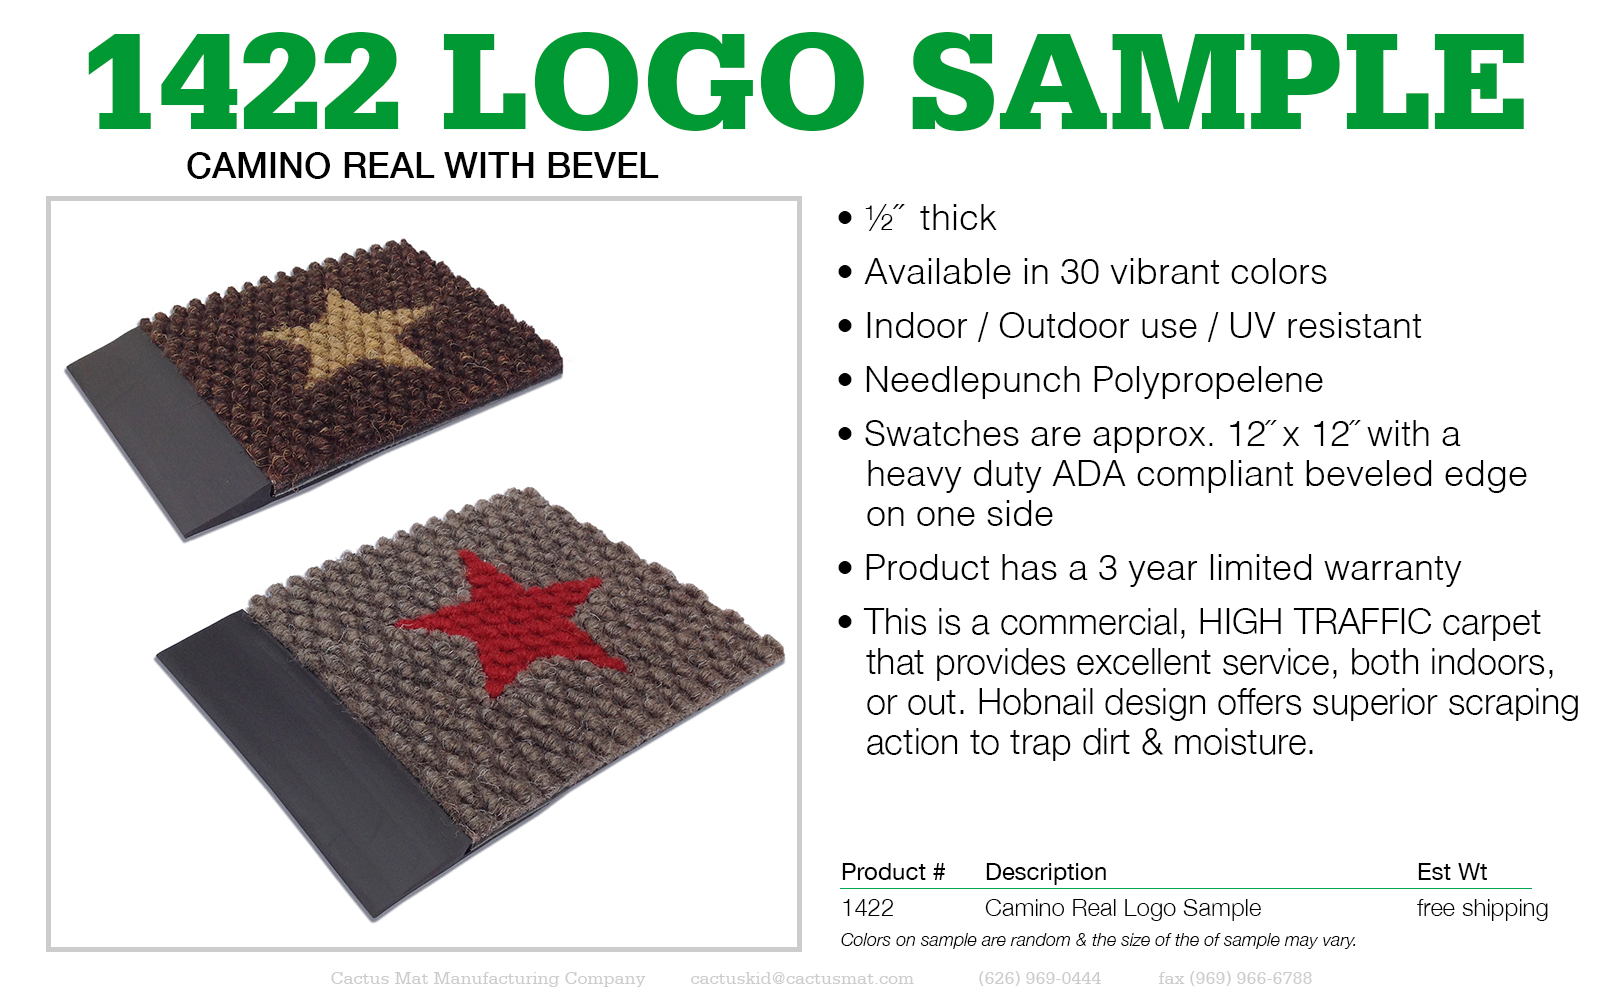 Authorized Cactus Mat Representatives may CLICK HERE to order #1422 Camino Real Logo Mat sample.